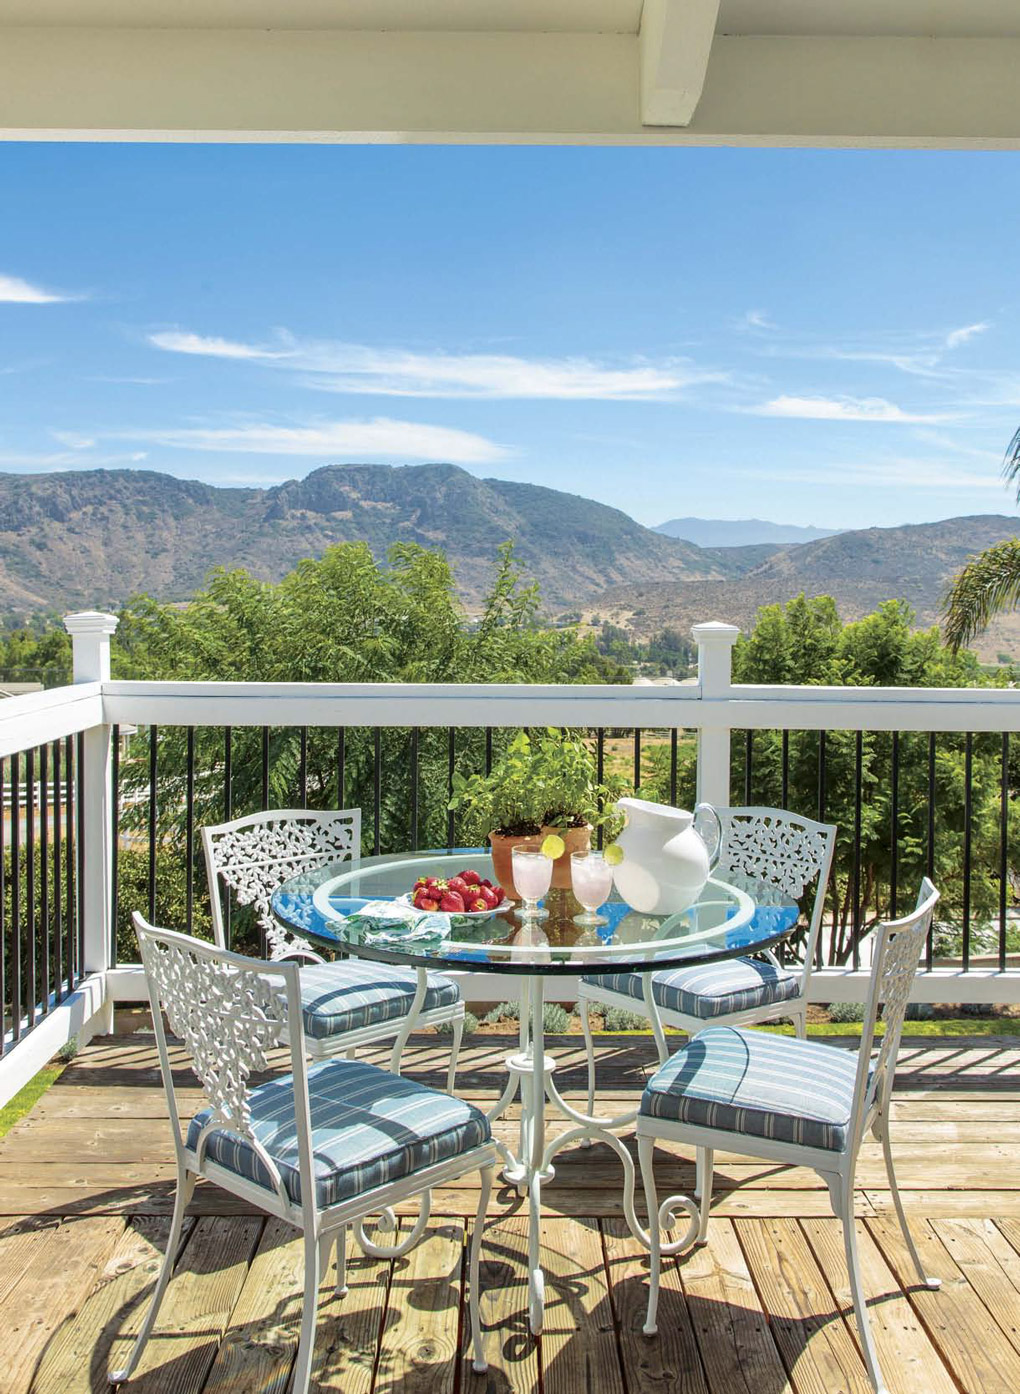 Wrap around deck with white metal dining bistro set arranged for a fresh breakfast with a view of expansive mountains.